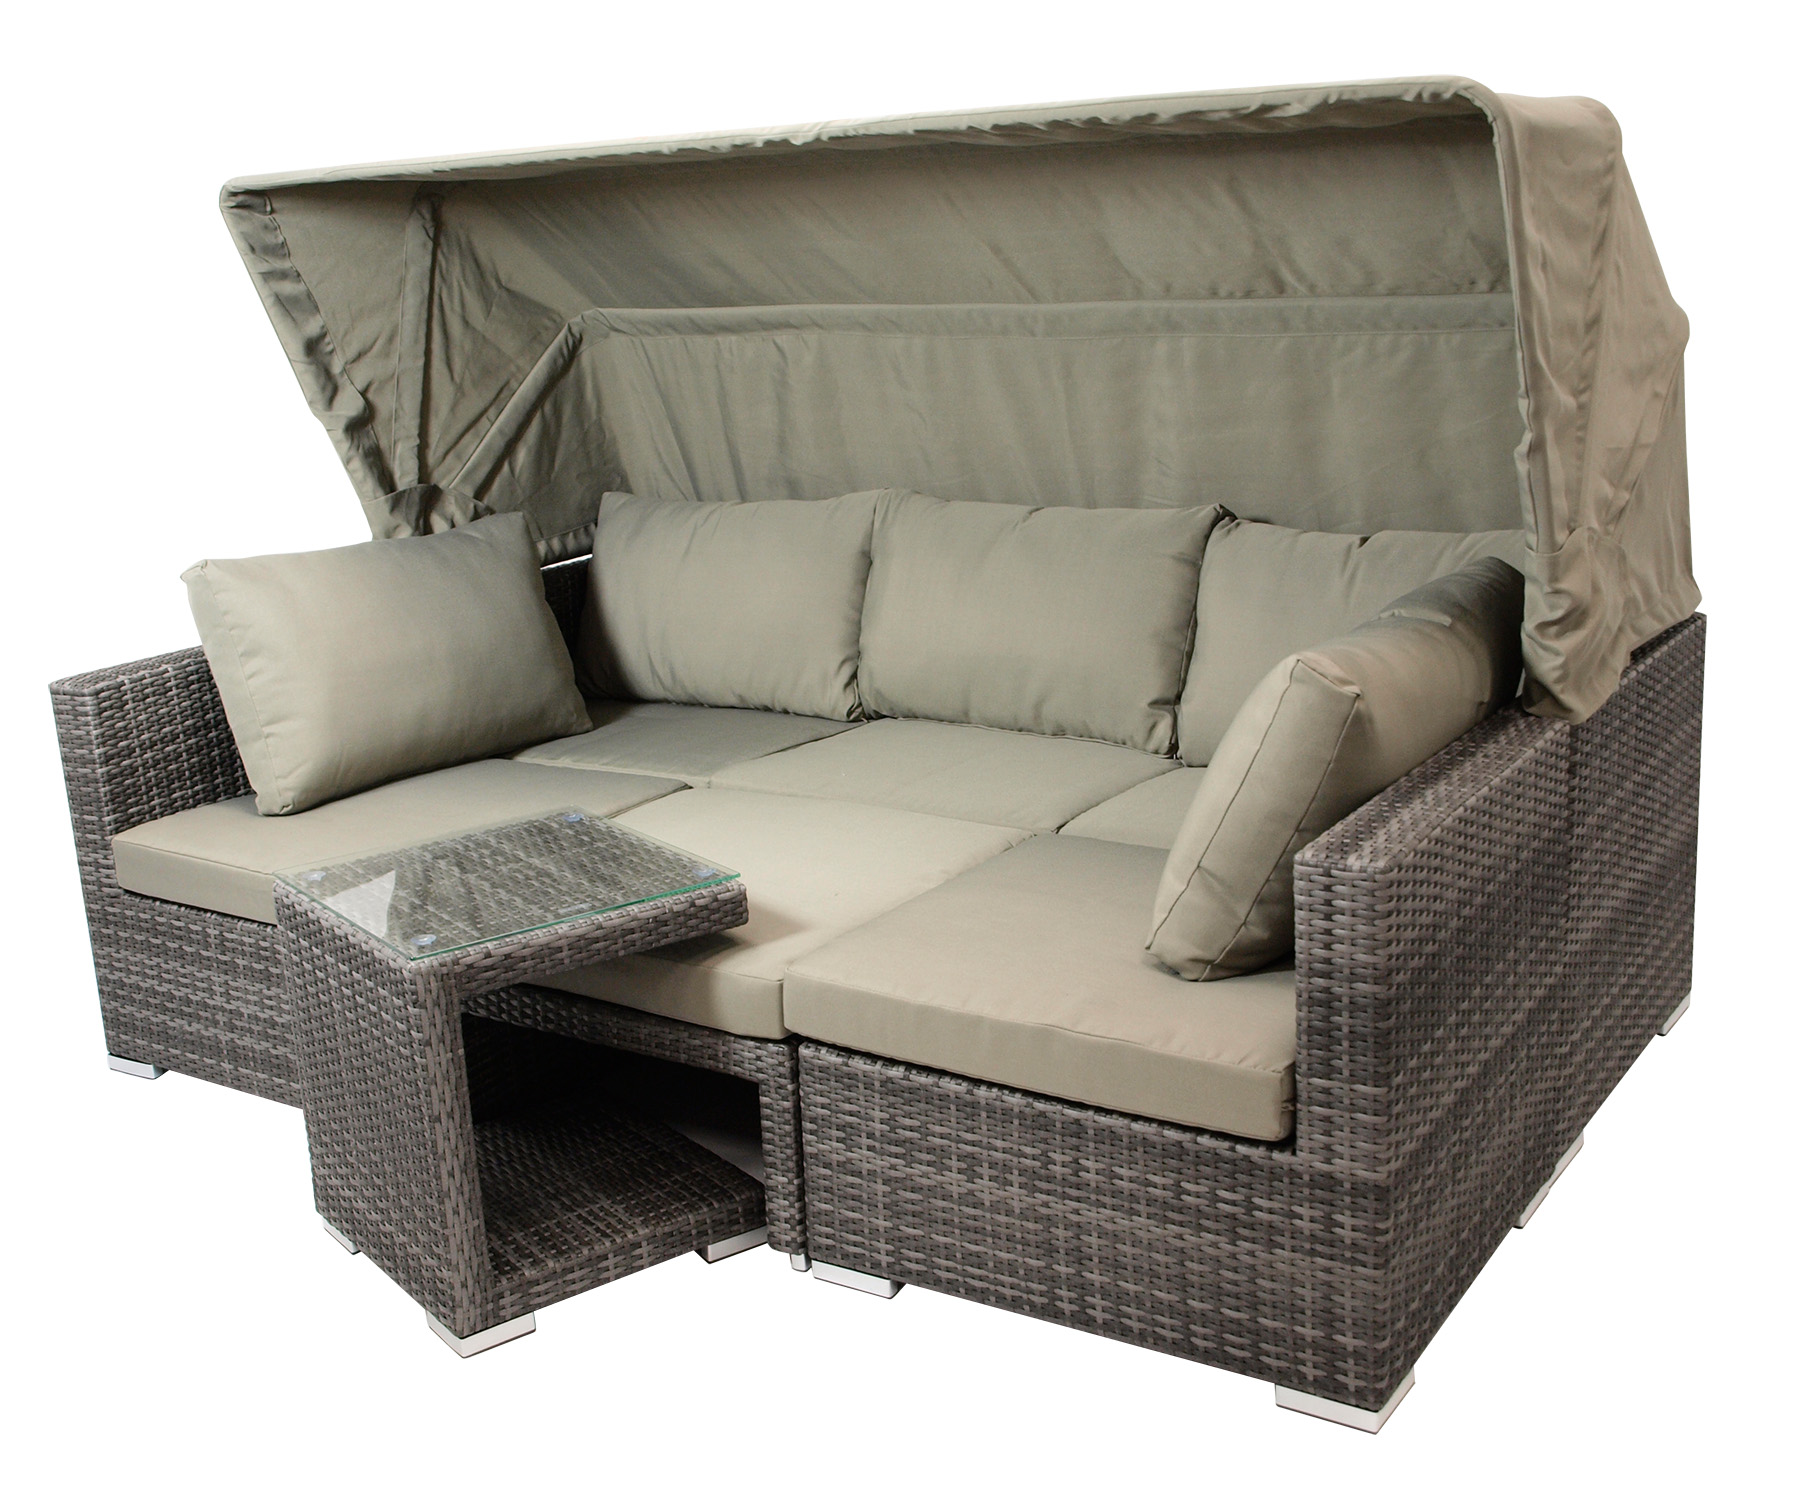 Loungeset Manacor 5 Pieces Complete Set Garden Set Lounge